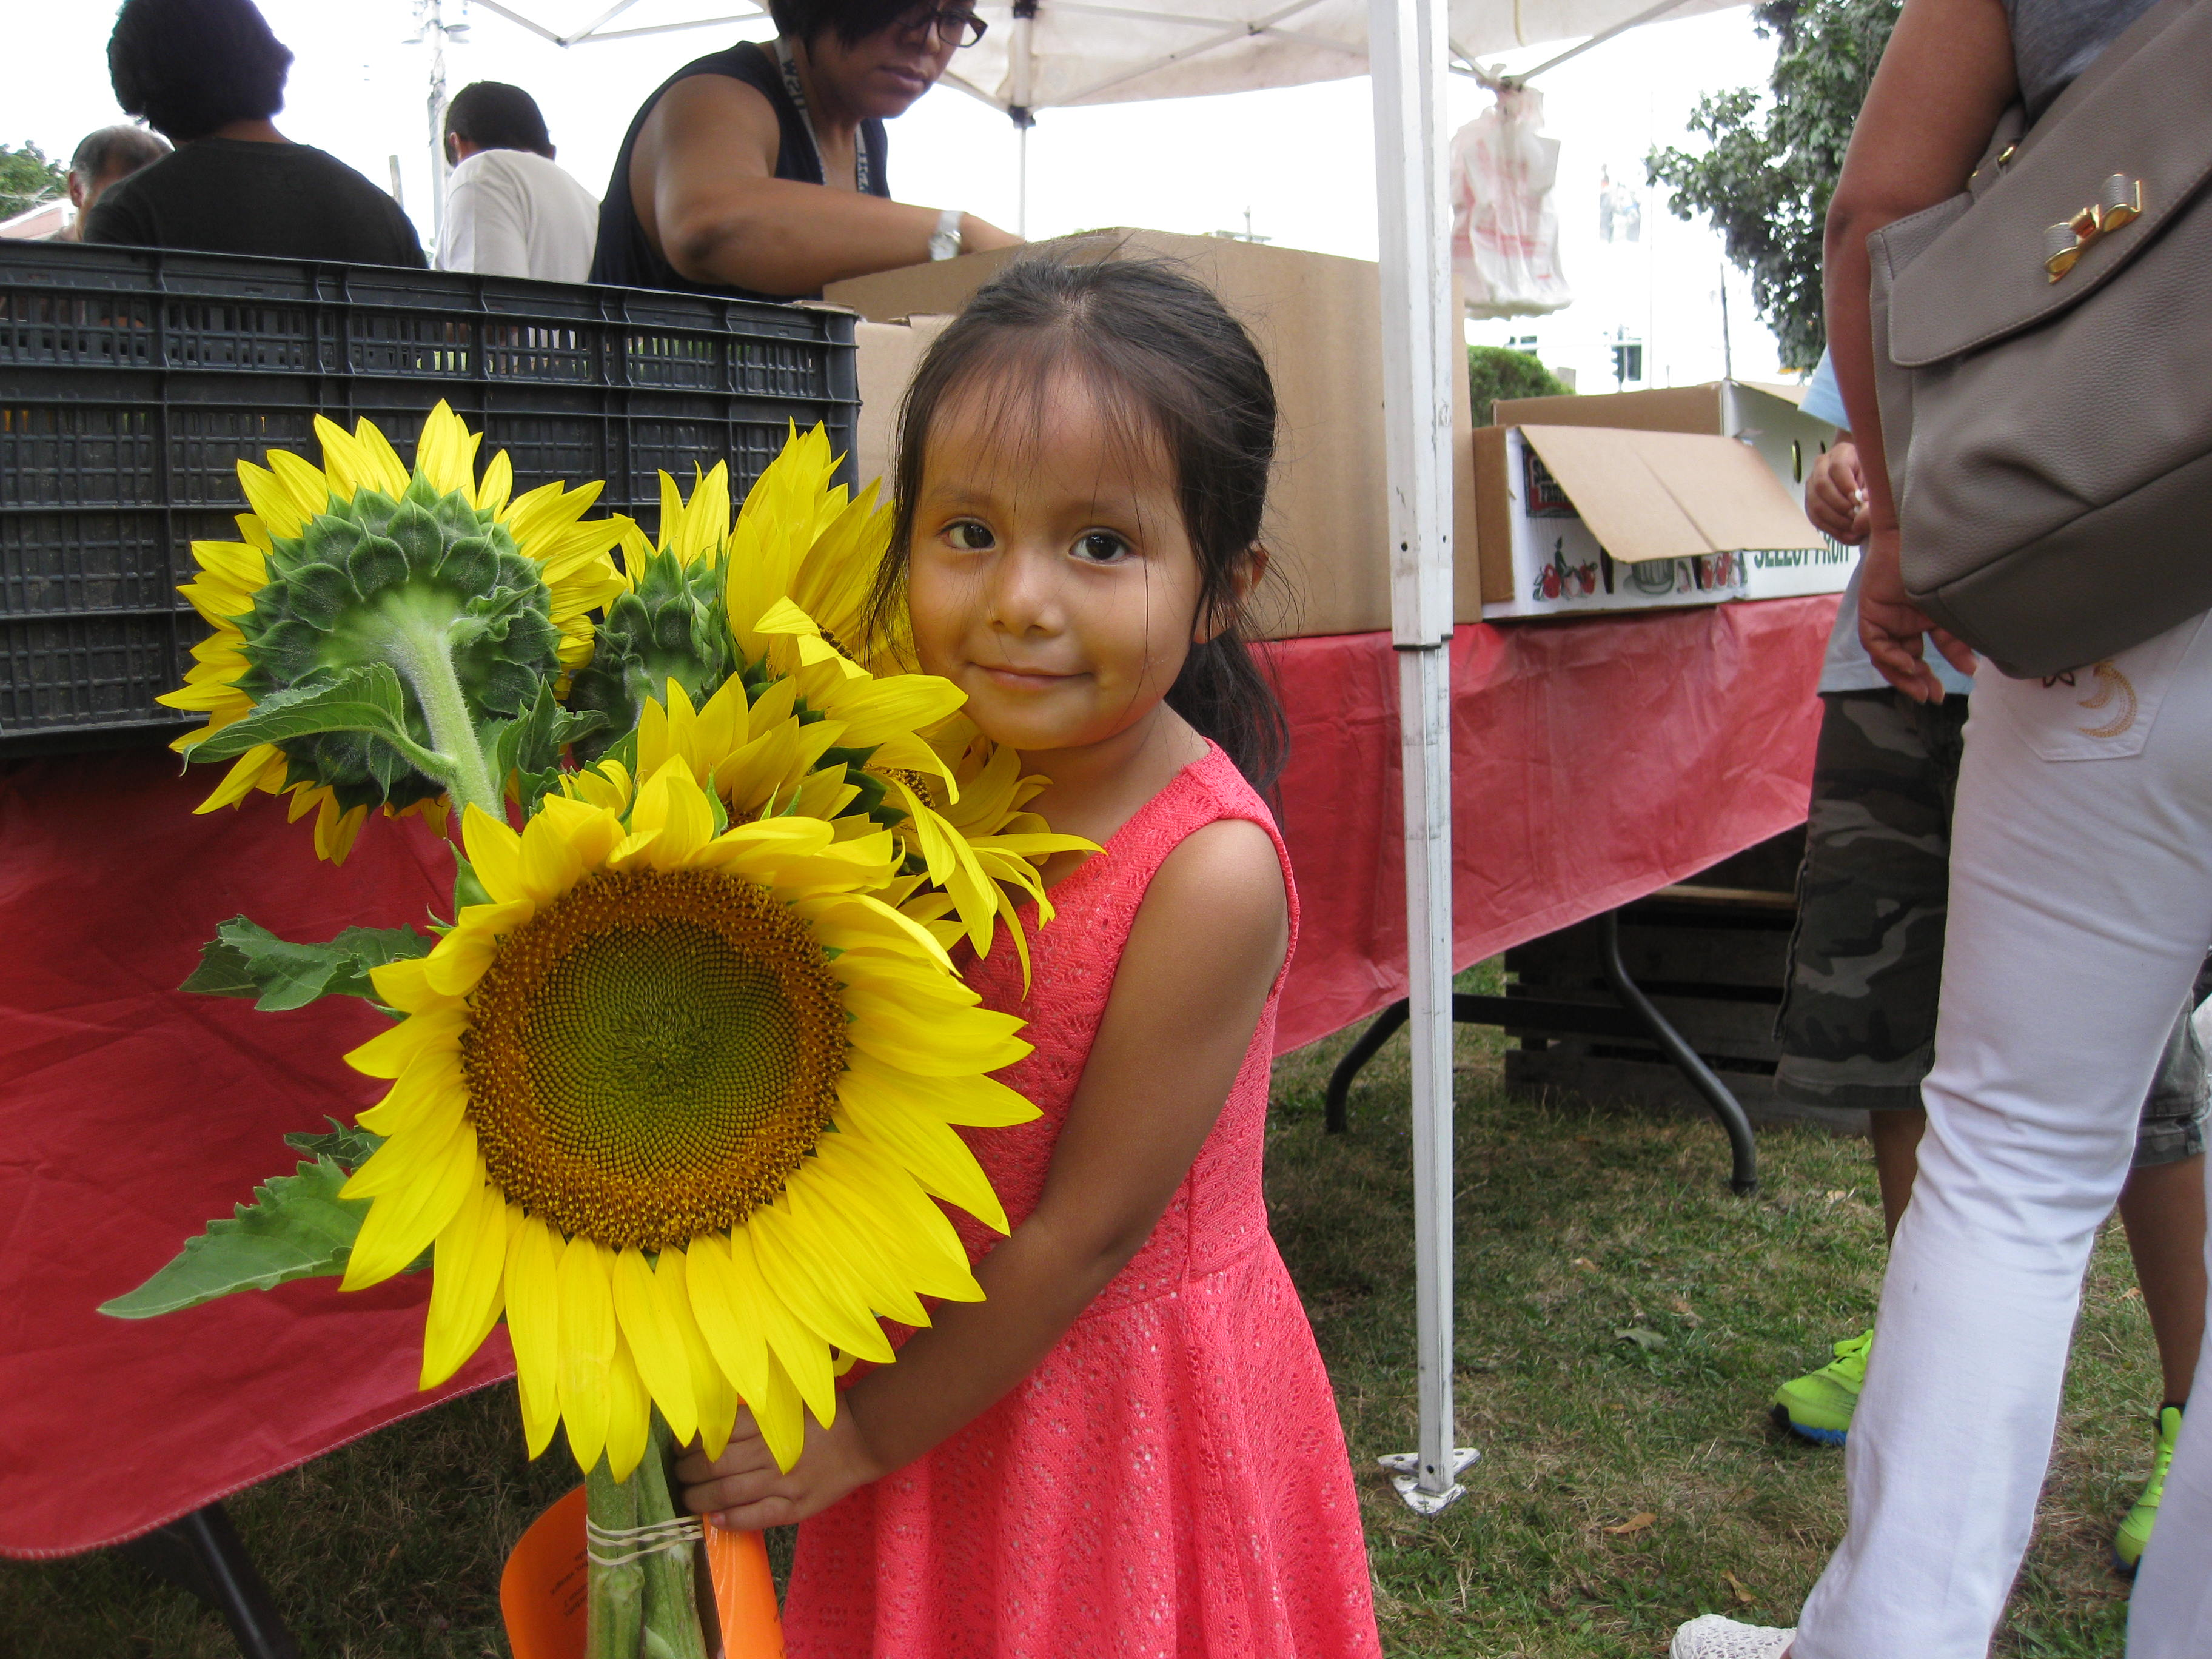 girl holding sunflowers at a market